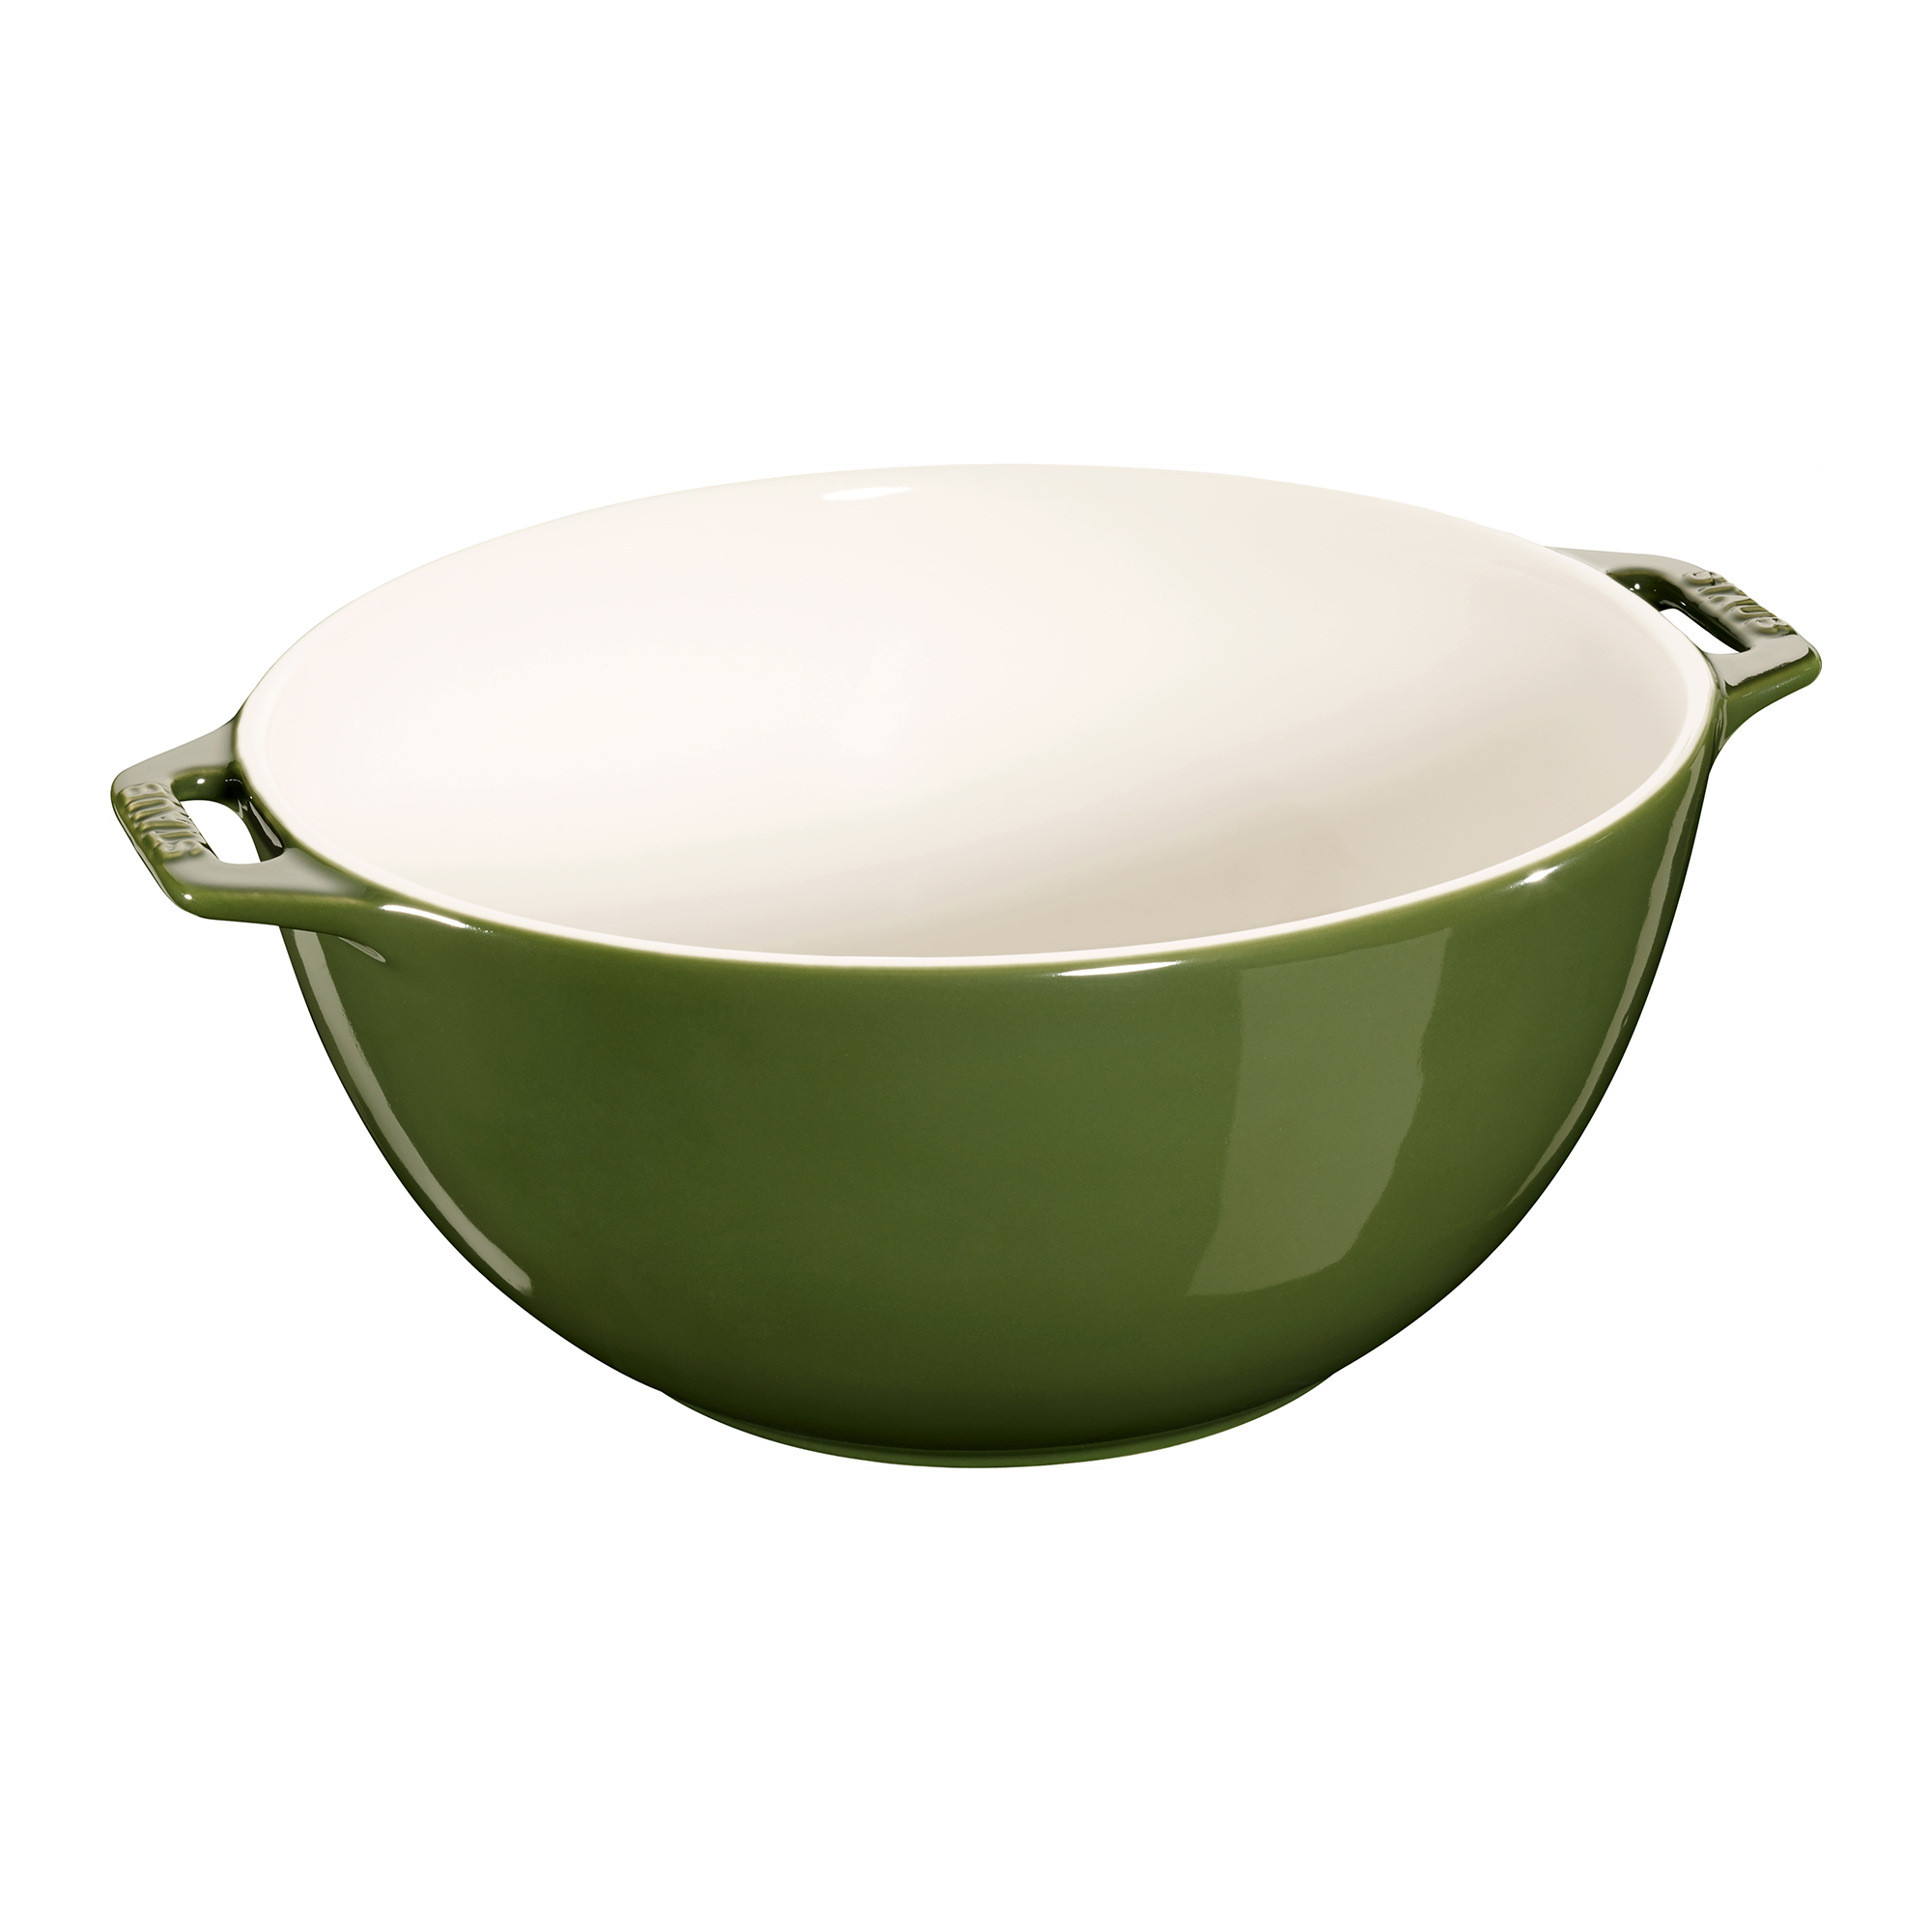 Staub Ceramic 9.5-inch Large Serving Bowl - Basil